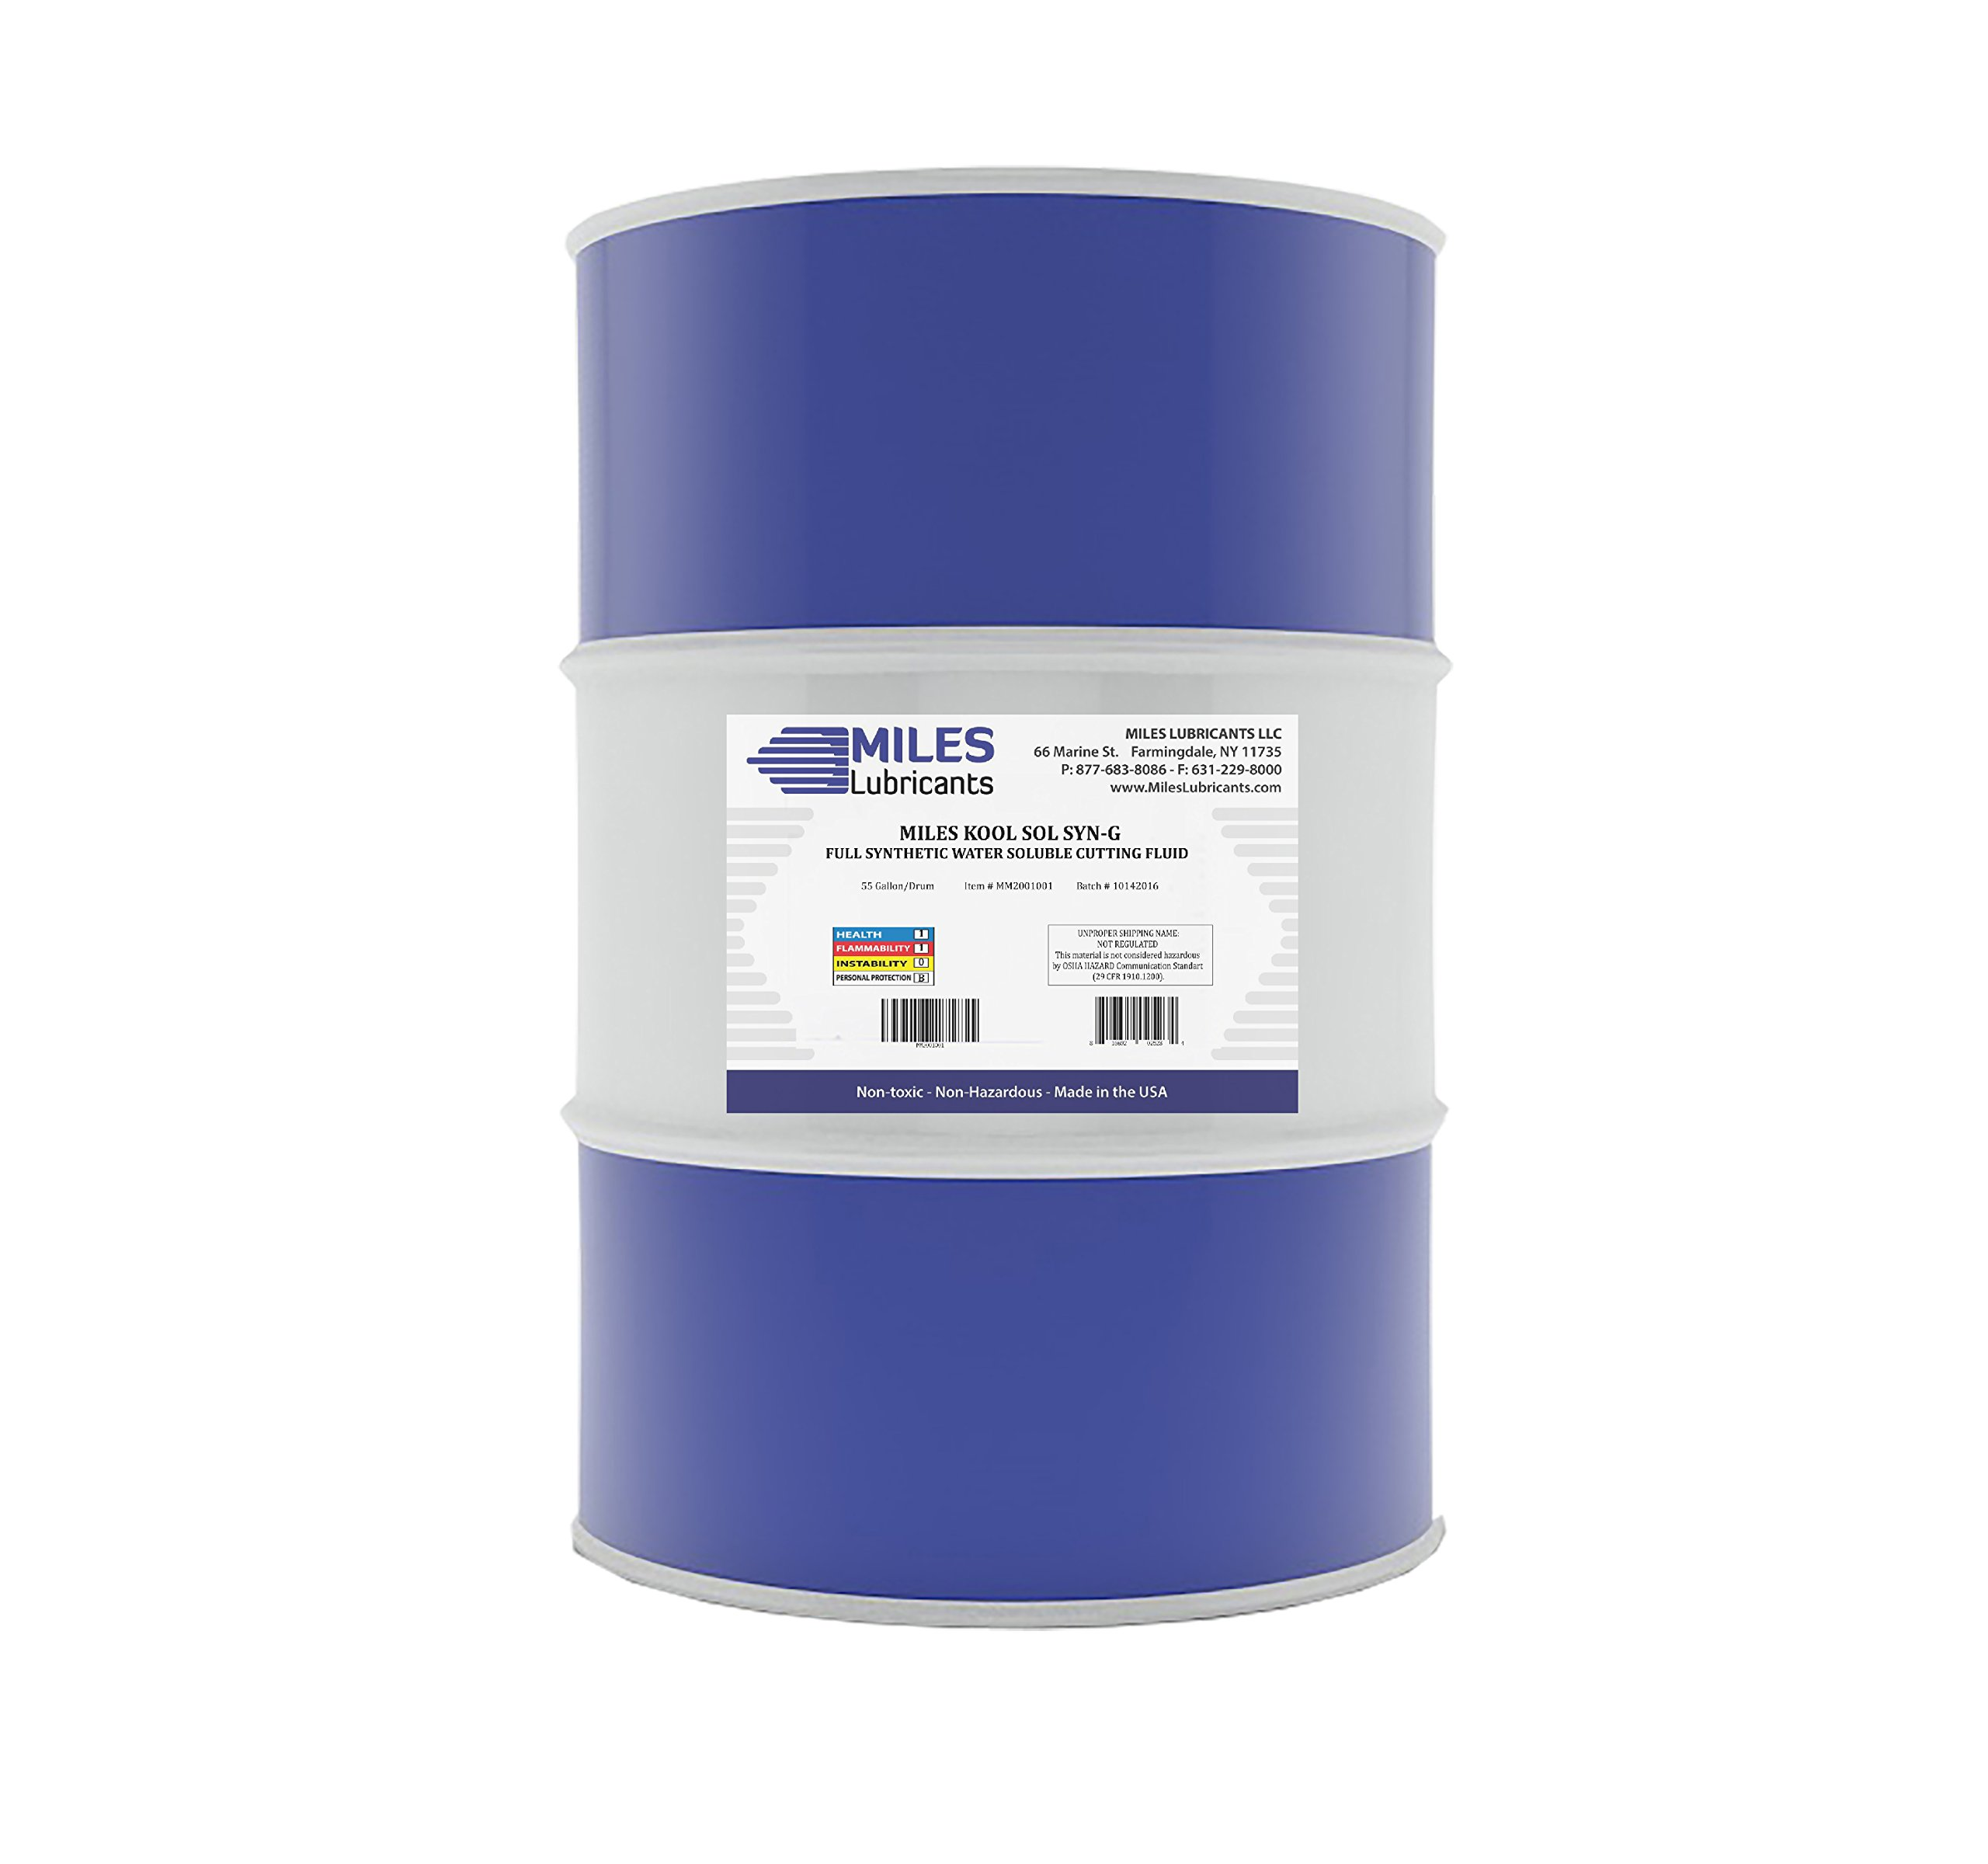 Miles Kool Sol Syn G Full Synthetic Water Soluble Cutting Fluid 55 Gal. Drum